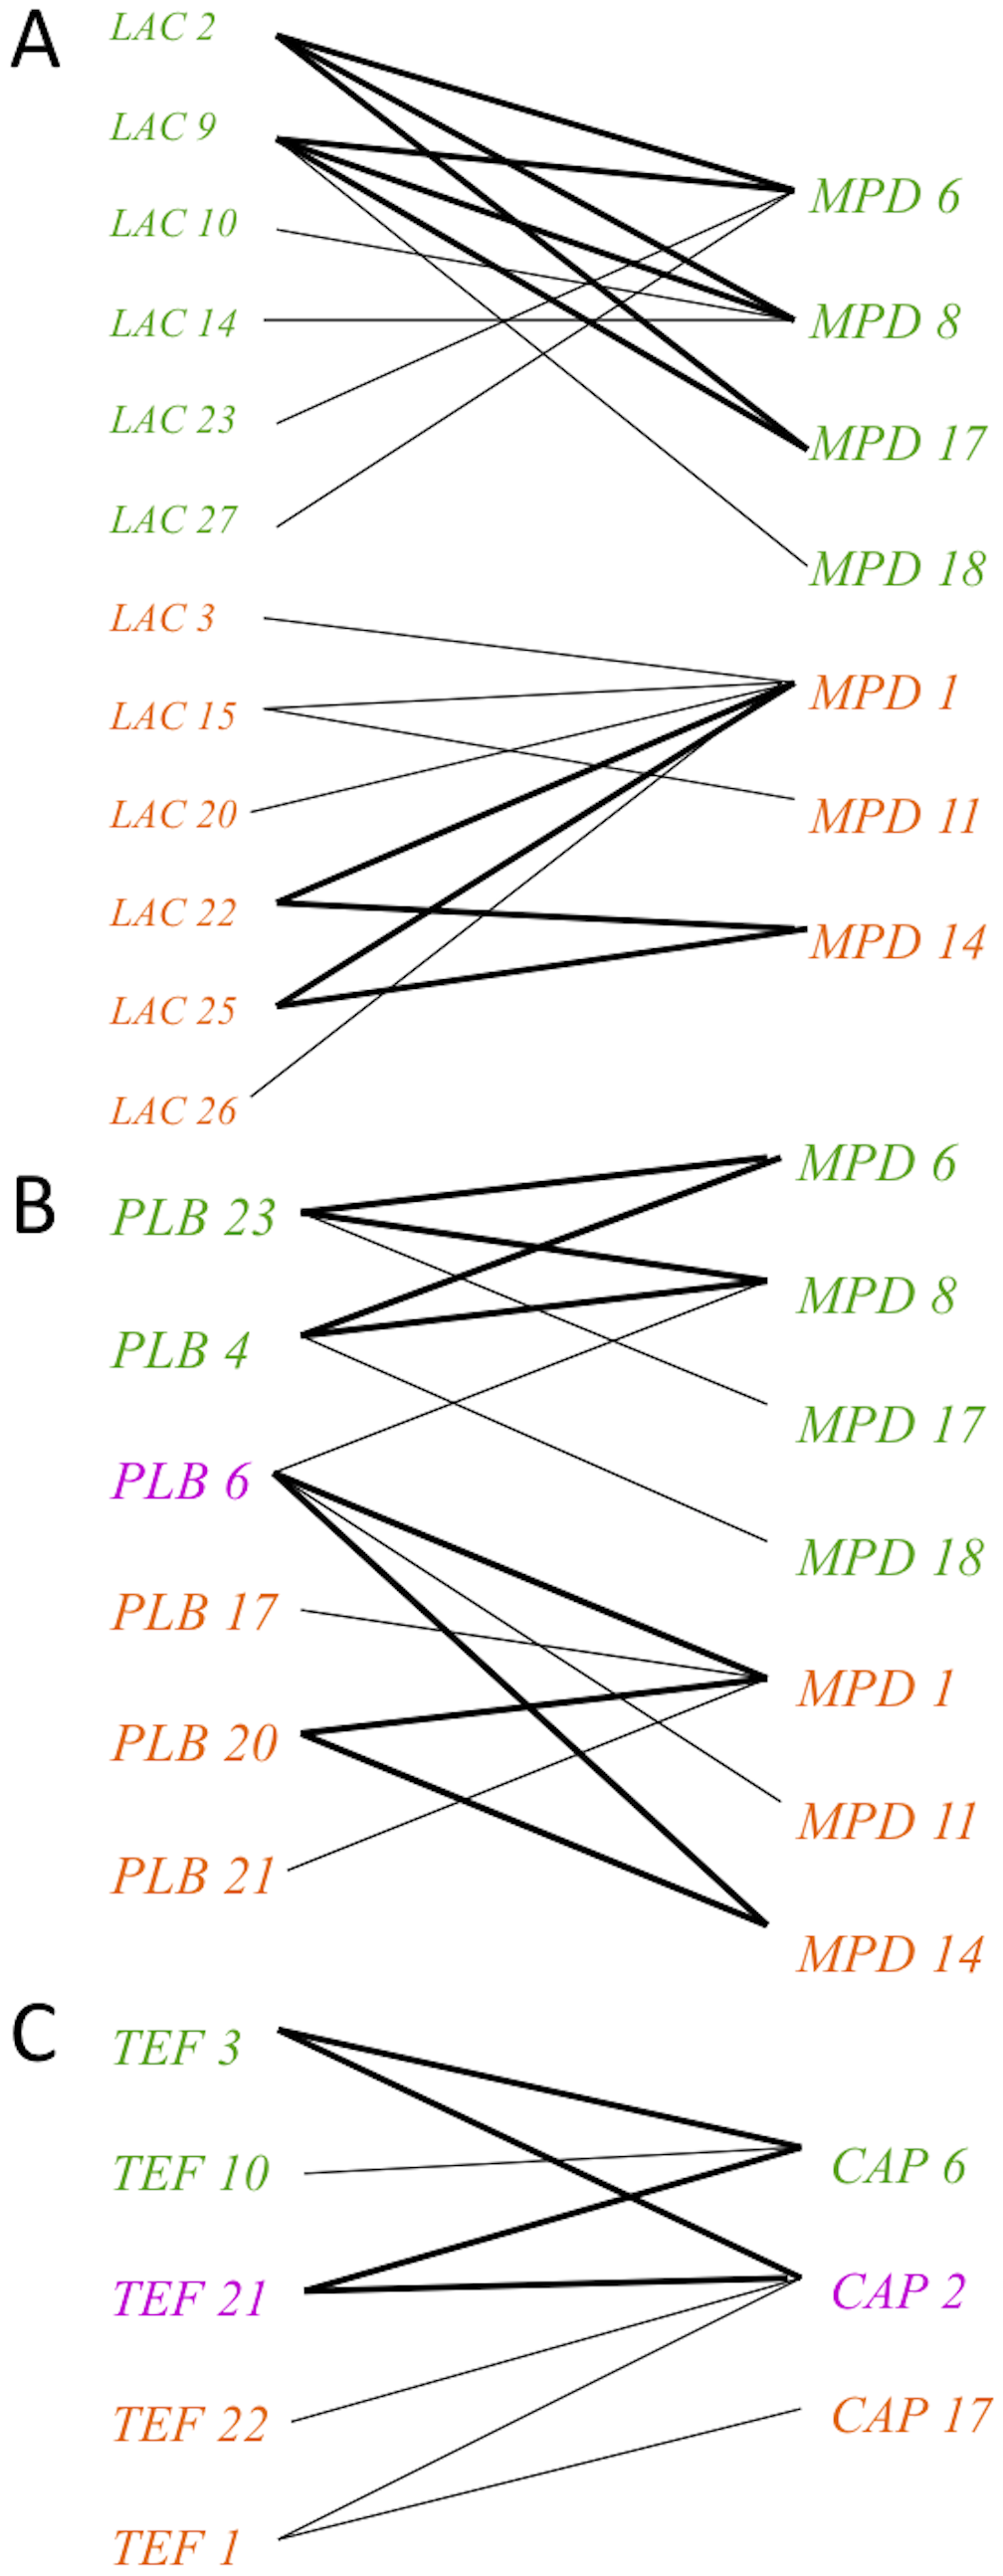 Evidence for genetic recombination within the VGIII population, particularly within alleles unique to the VGIIIa lineage.